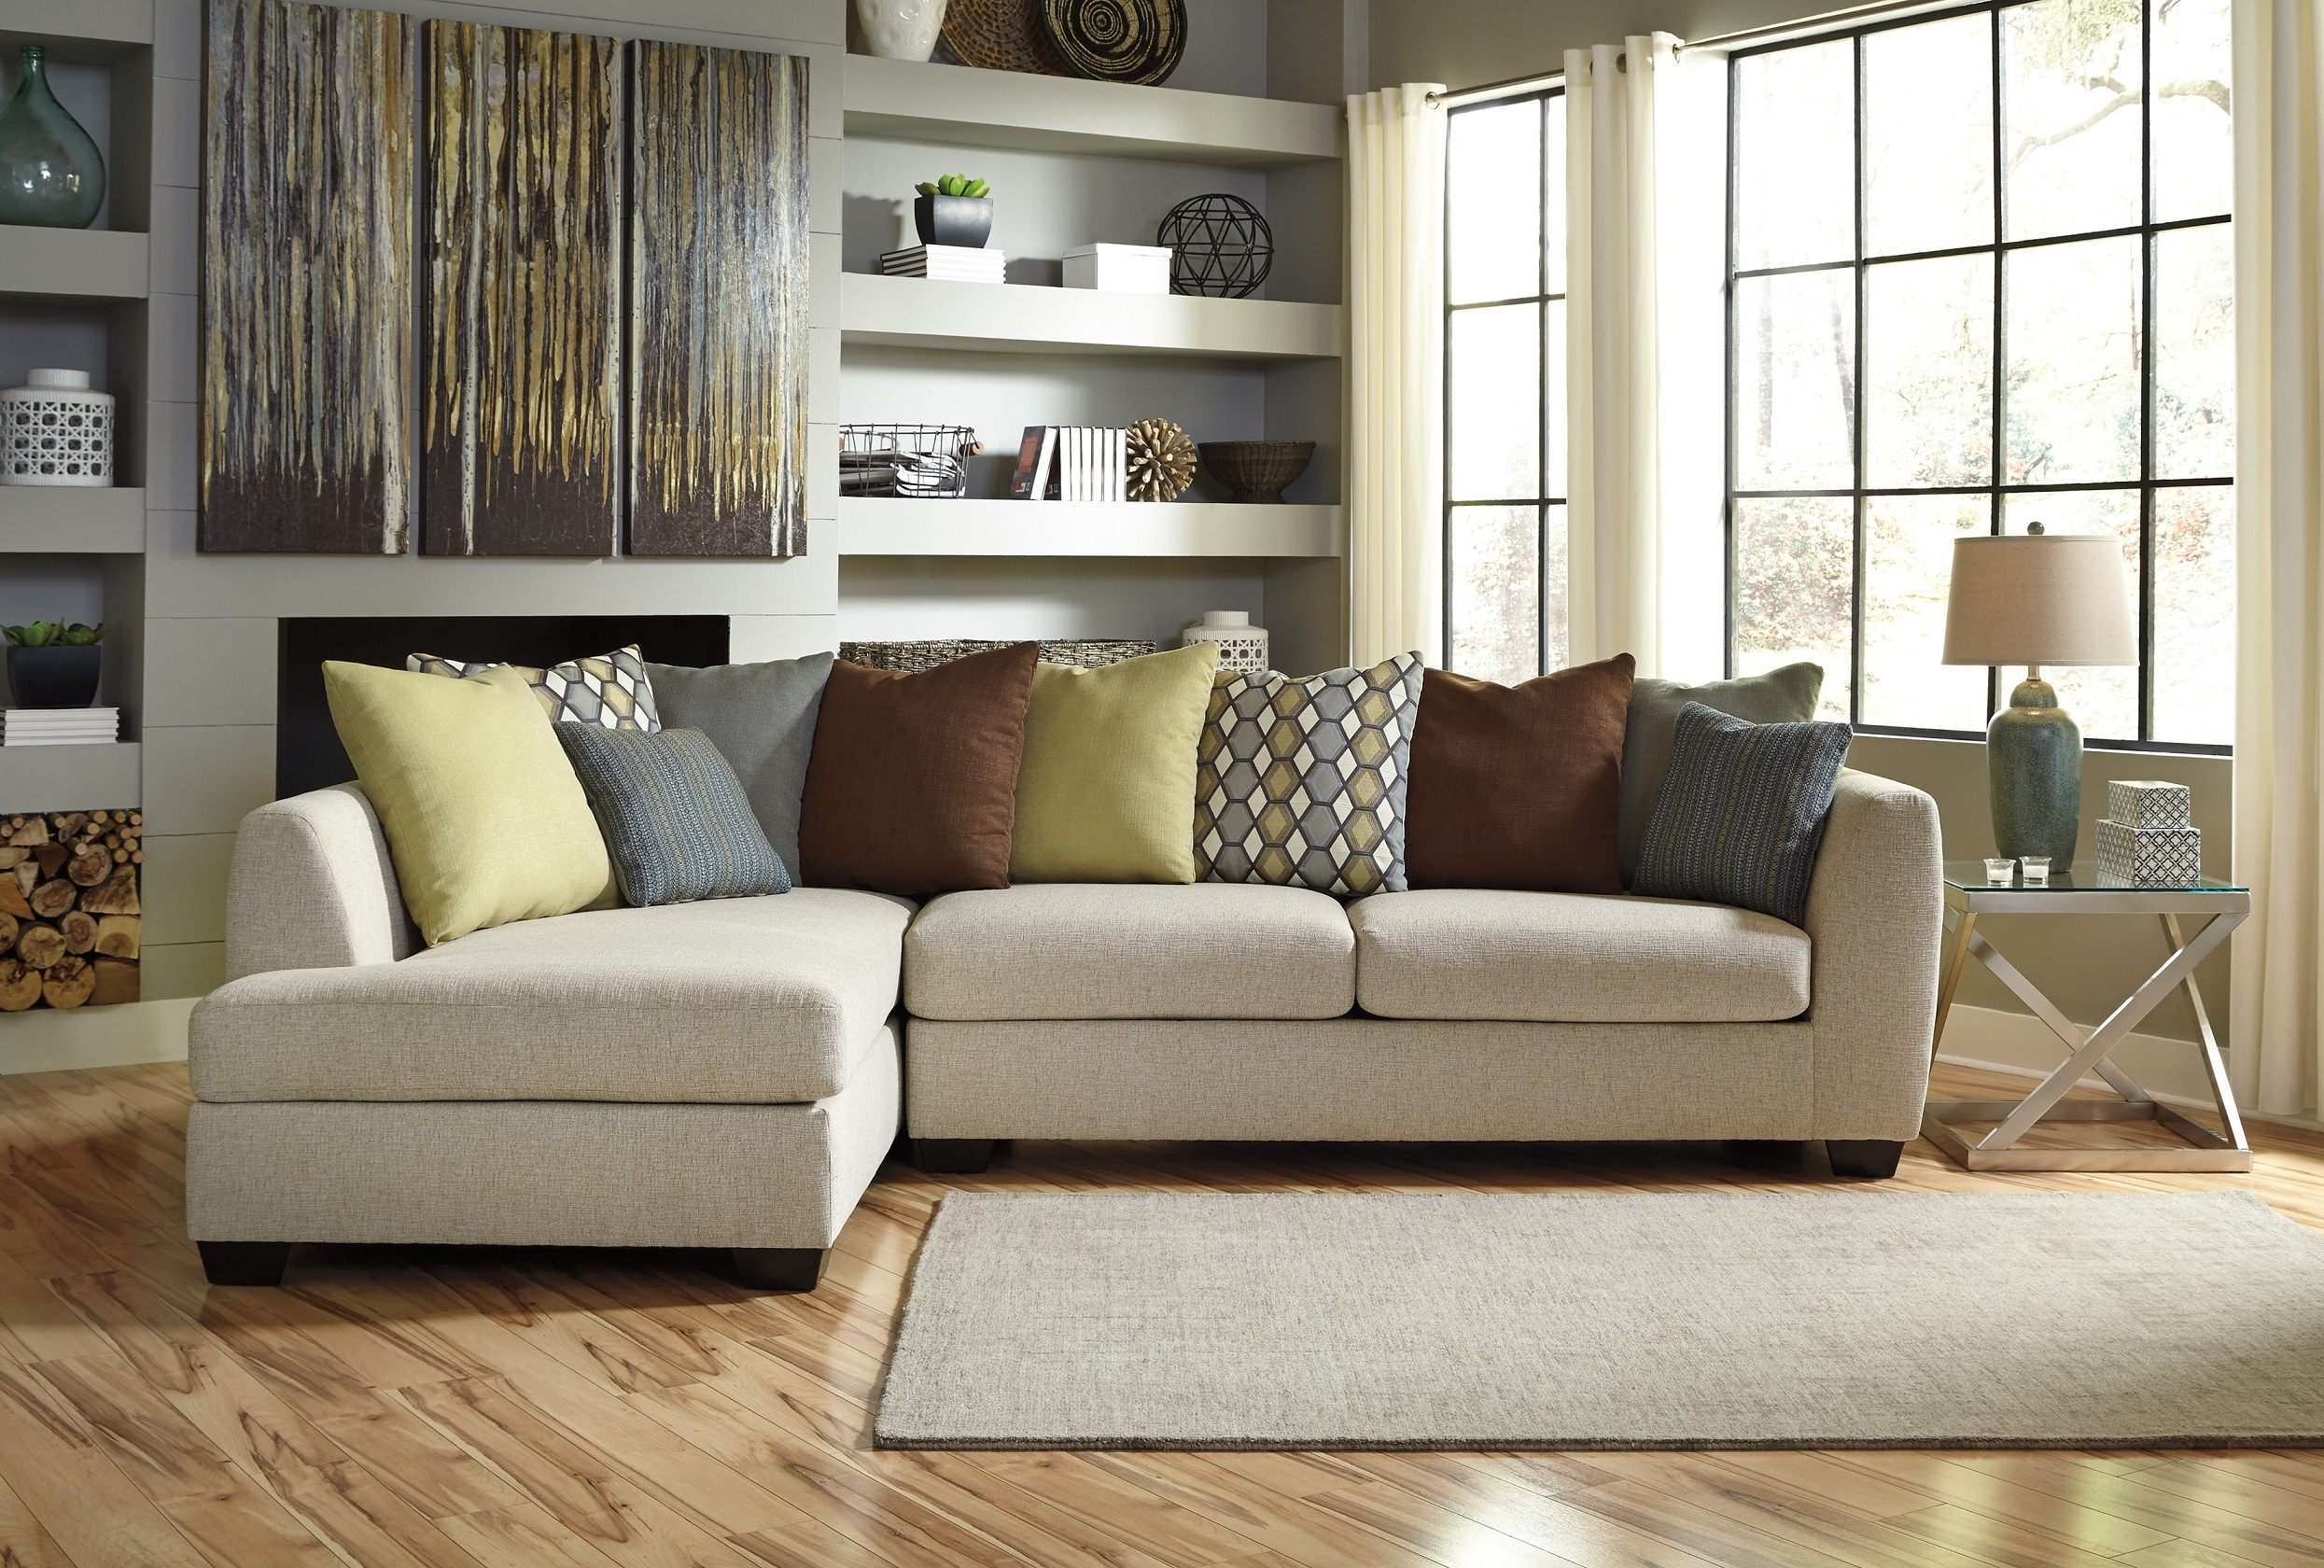 Sectional Sofas At Ashley Pertaining To Most Up To Date Love Sofa Bed Sofa Bed Sectional Queen Contemporary Loveseat Sofas (View 6 of 20)